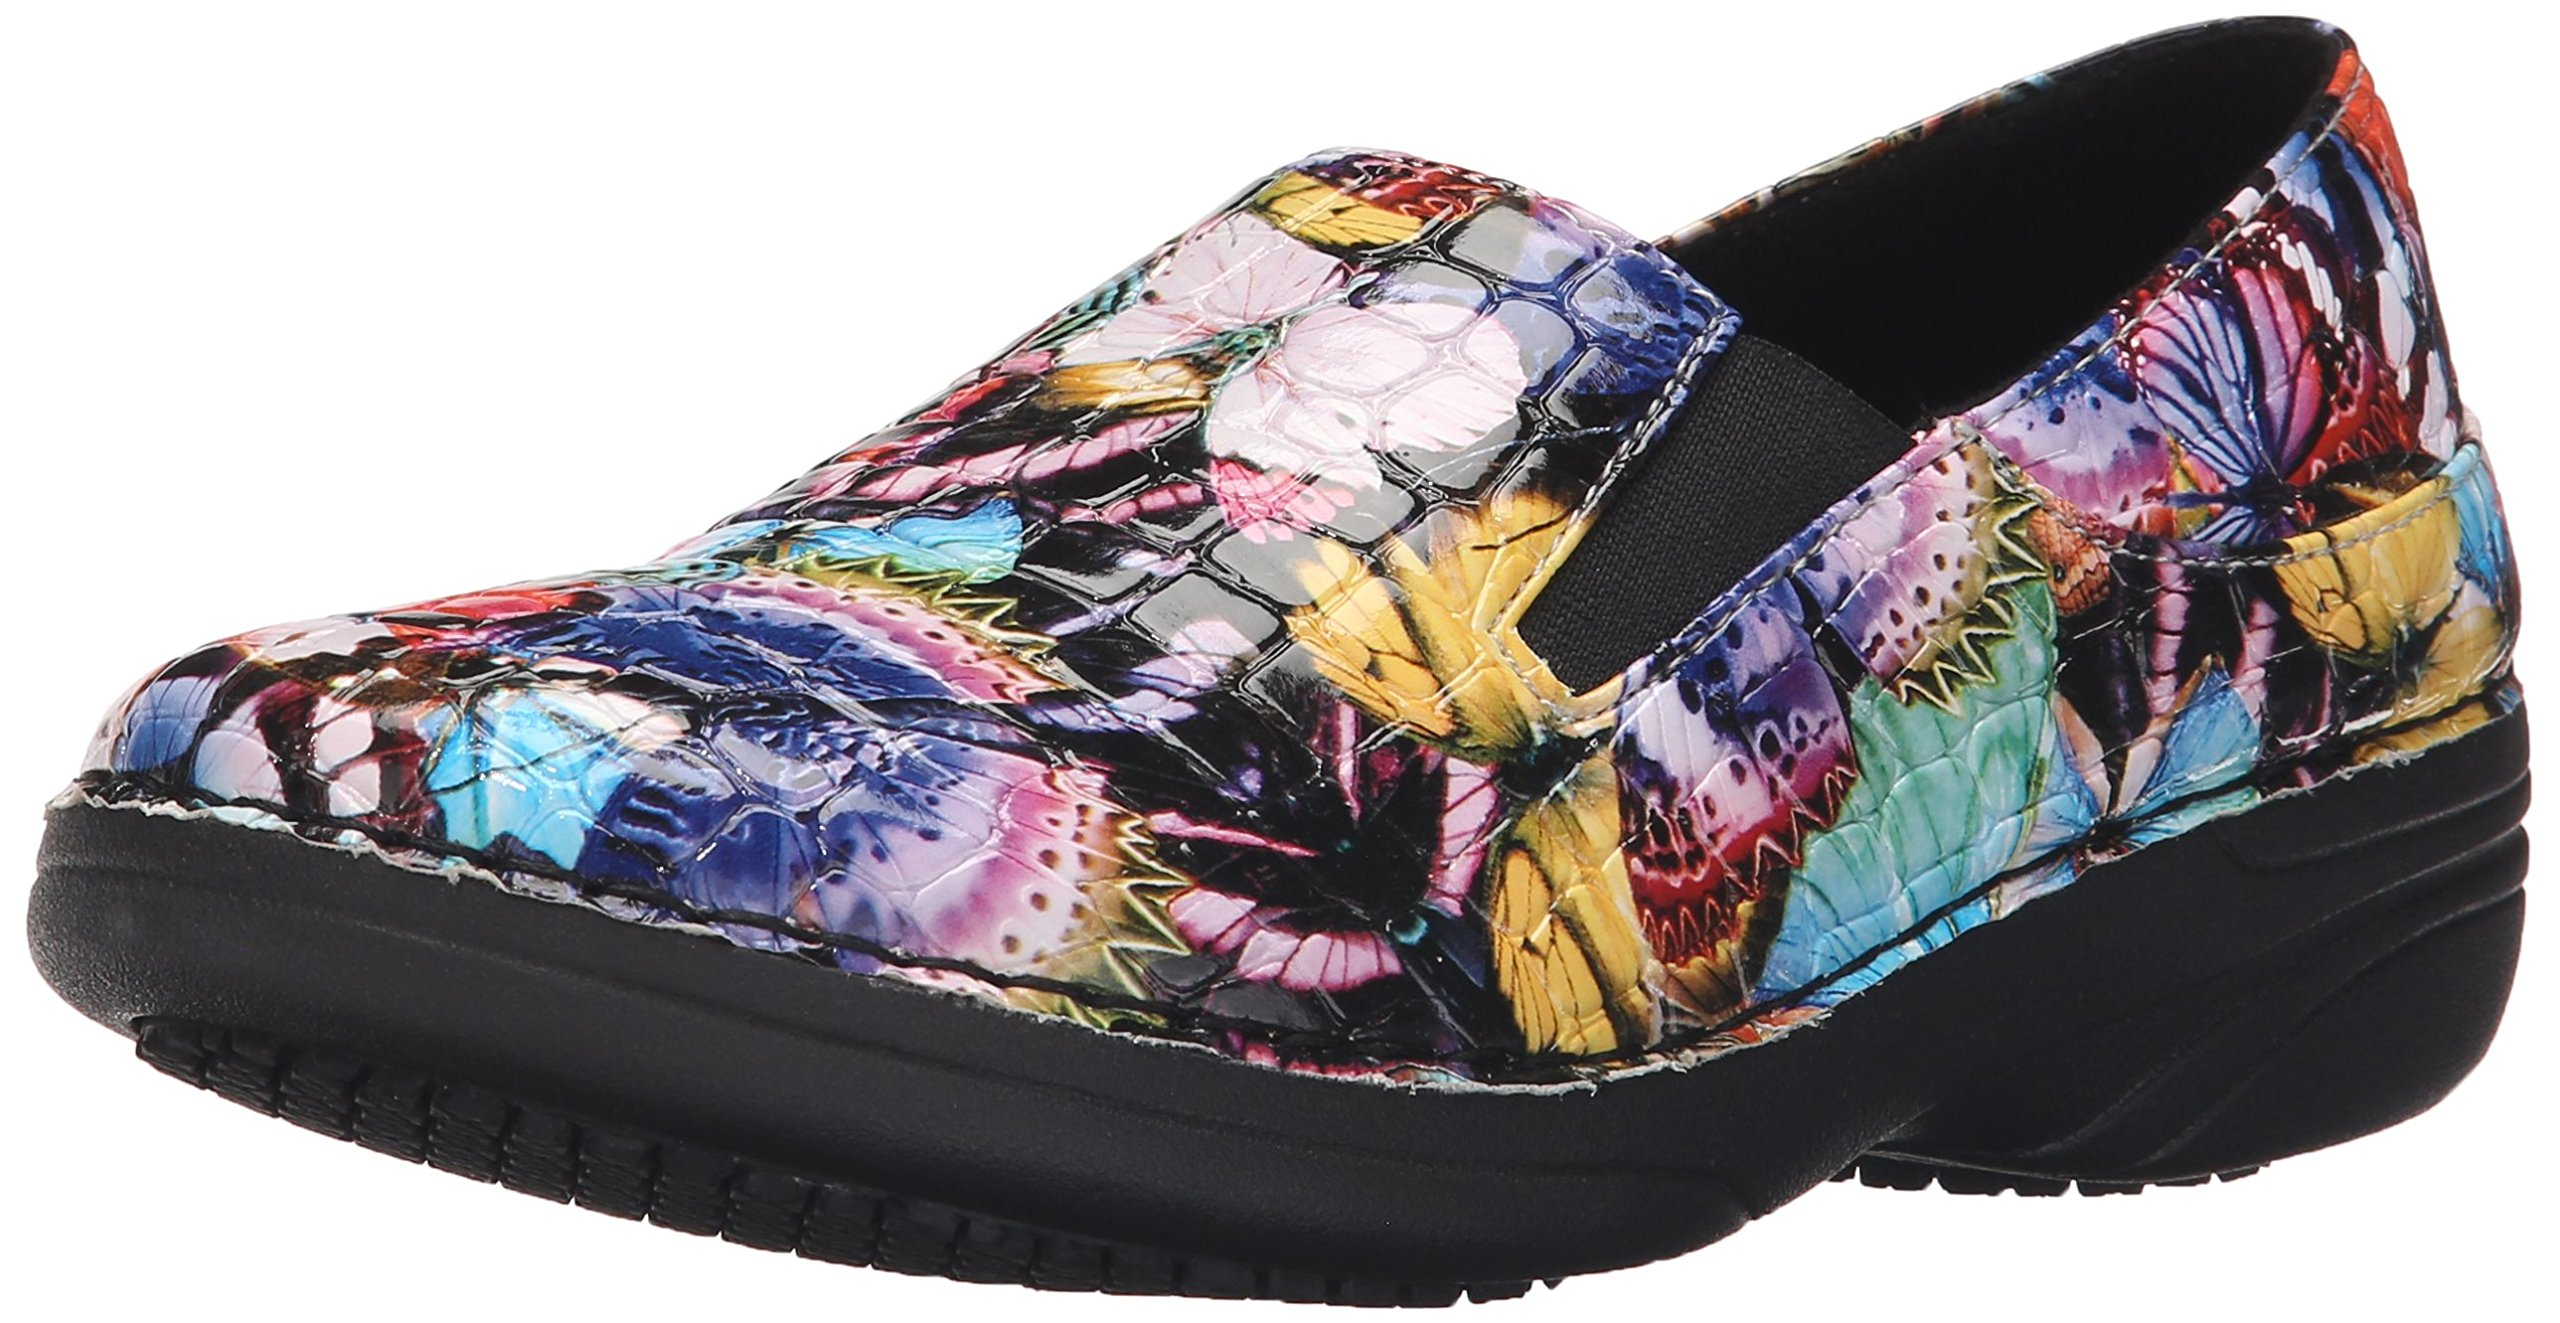 Spring Step Women's Ferrara Work Shoe, Blue/Multi Butterfly Crocodile, 7.5 M US